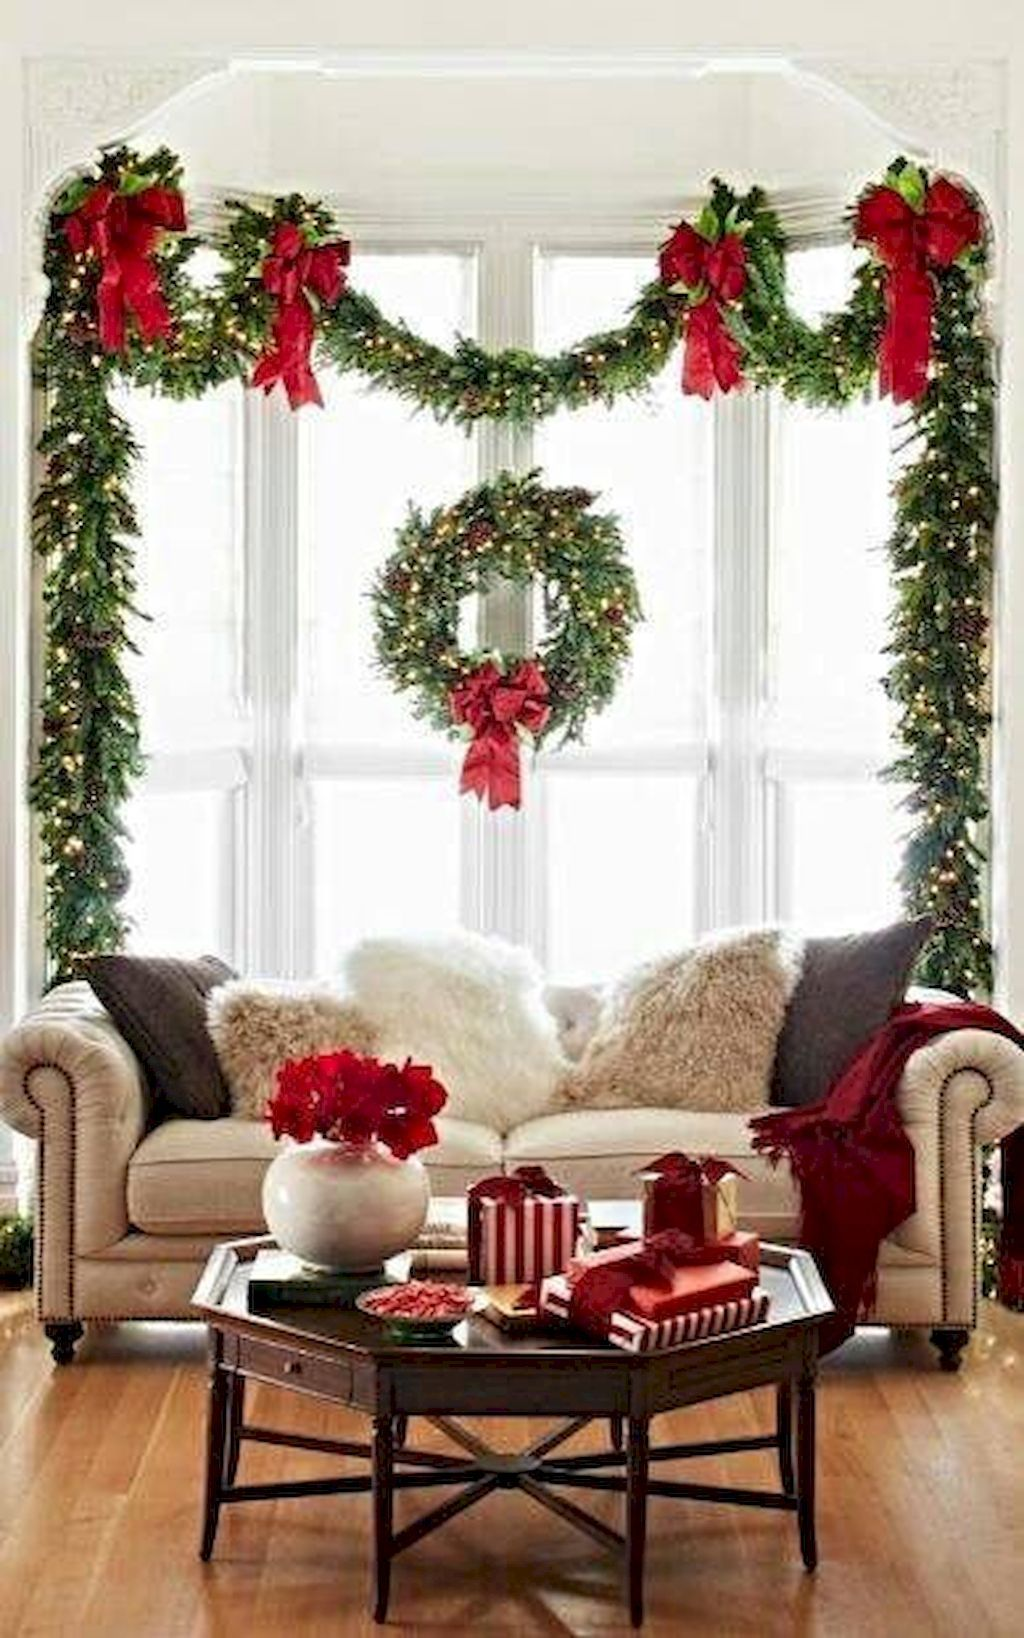 25 Awesome Christmas Decorations Apartment Ideas Christmas